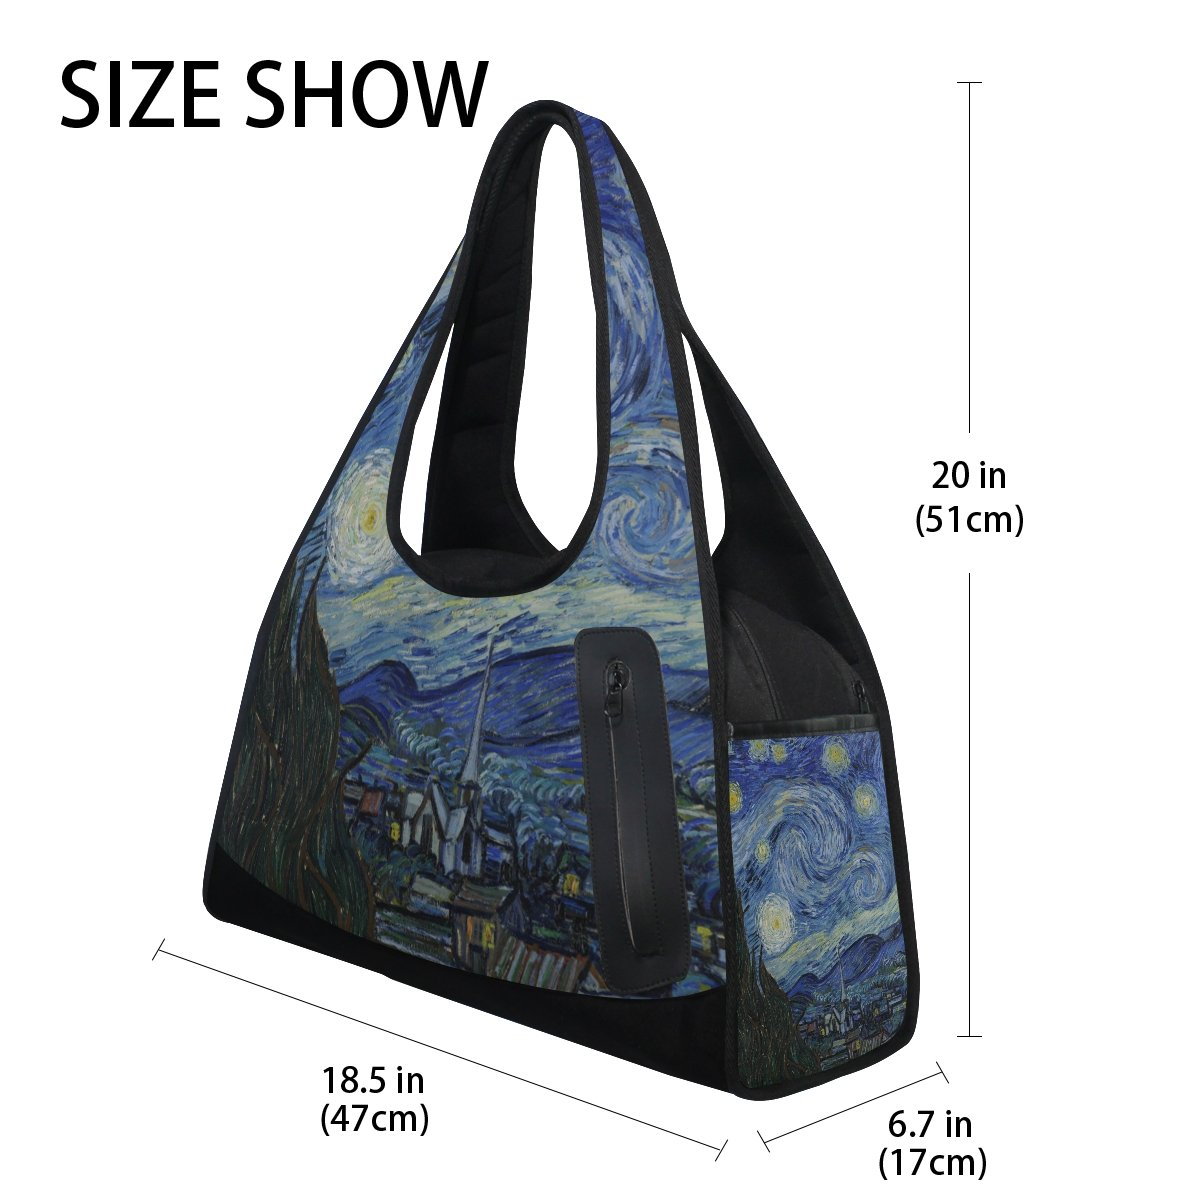 AHOMY Canvas Sports Gym Bag Van Gogh Starry Night Moon Duffel Bag Travel Shoulder Bag